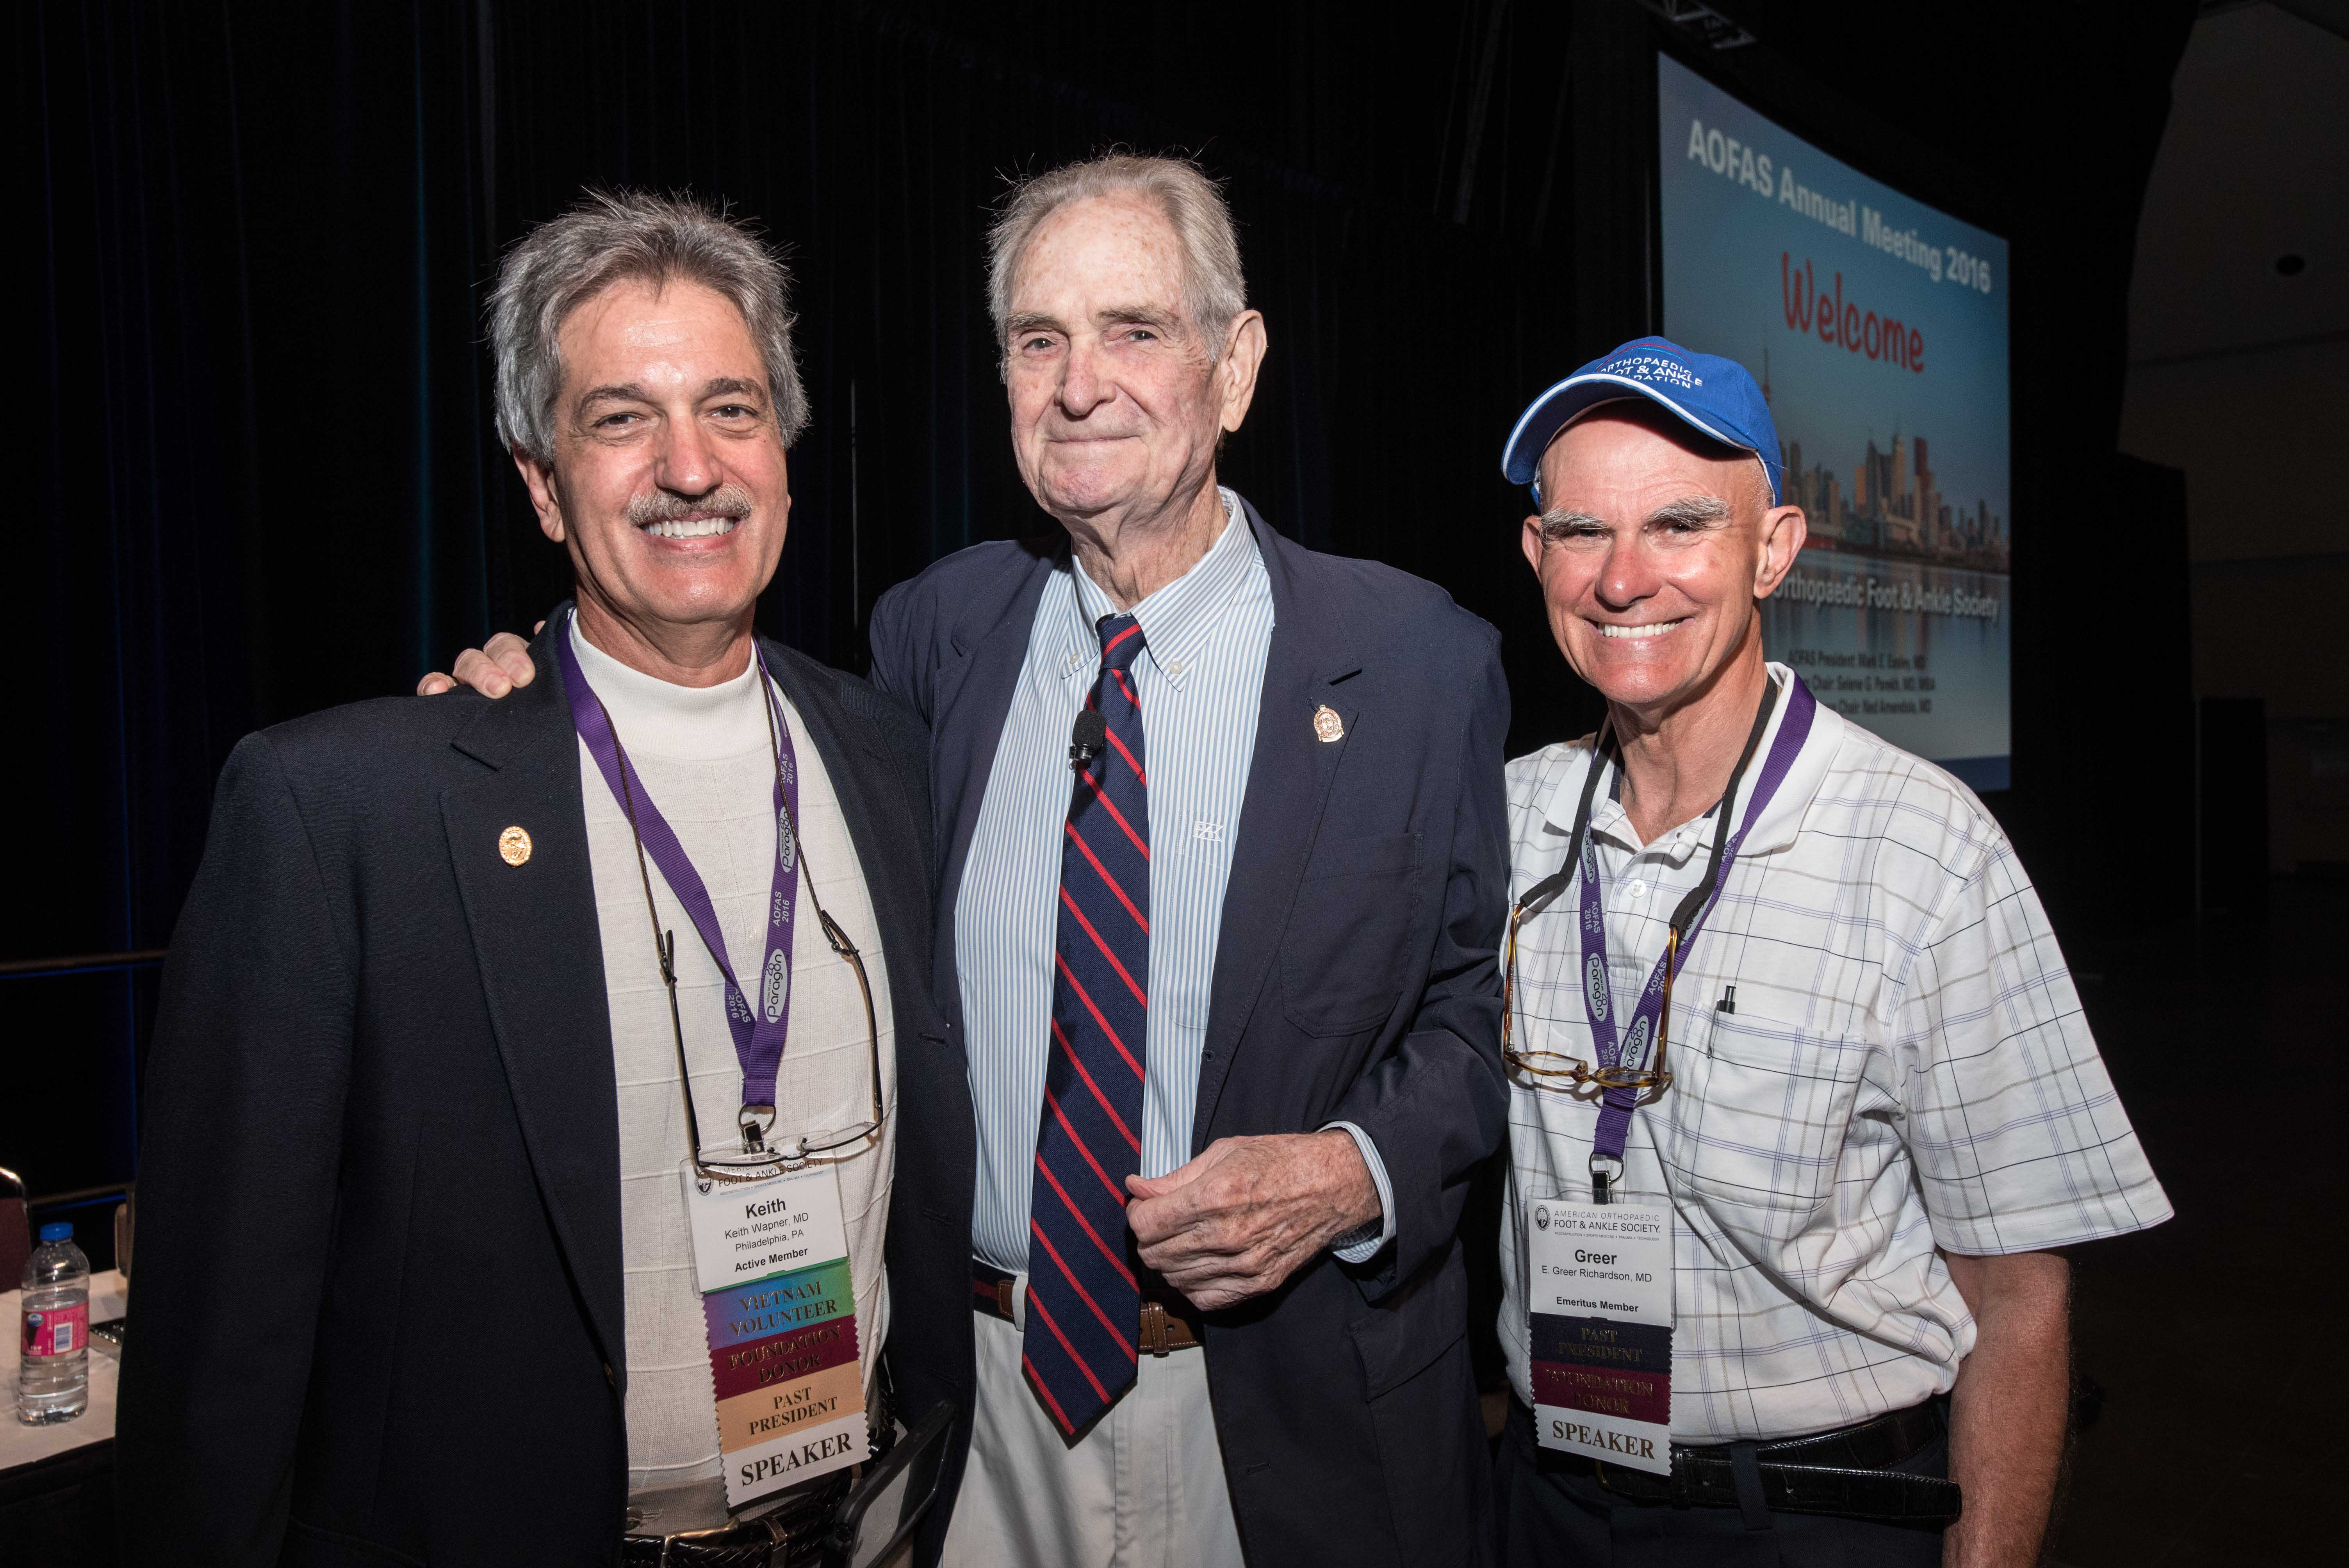 Keith Wapner, MD, William Hamilton, MD, and E. Greer Richardson, MD